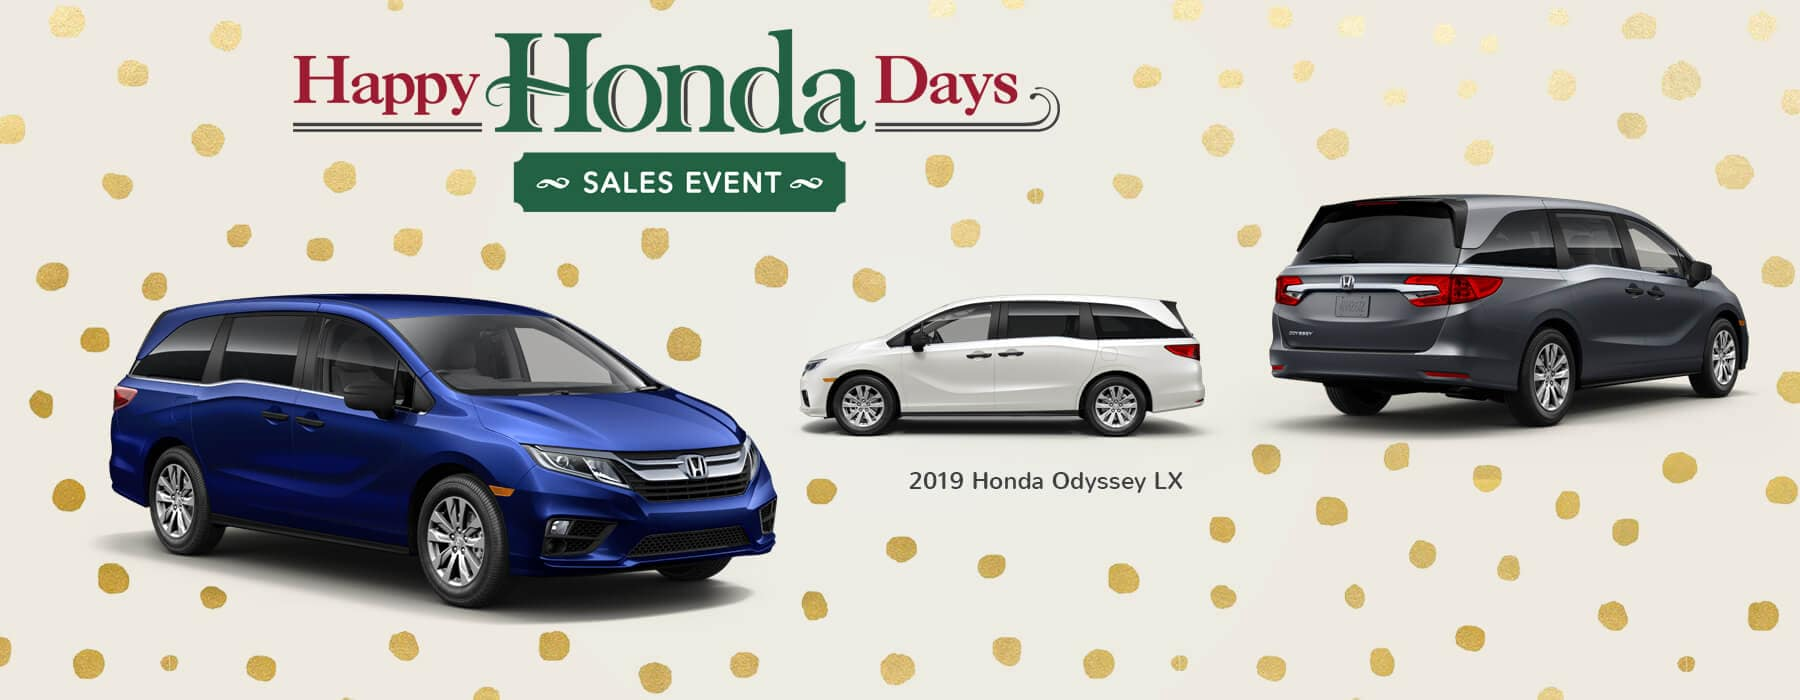 Happy Honda Days Sales Event 2019 Honda Odyssey Slider